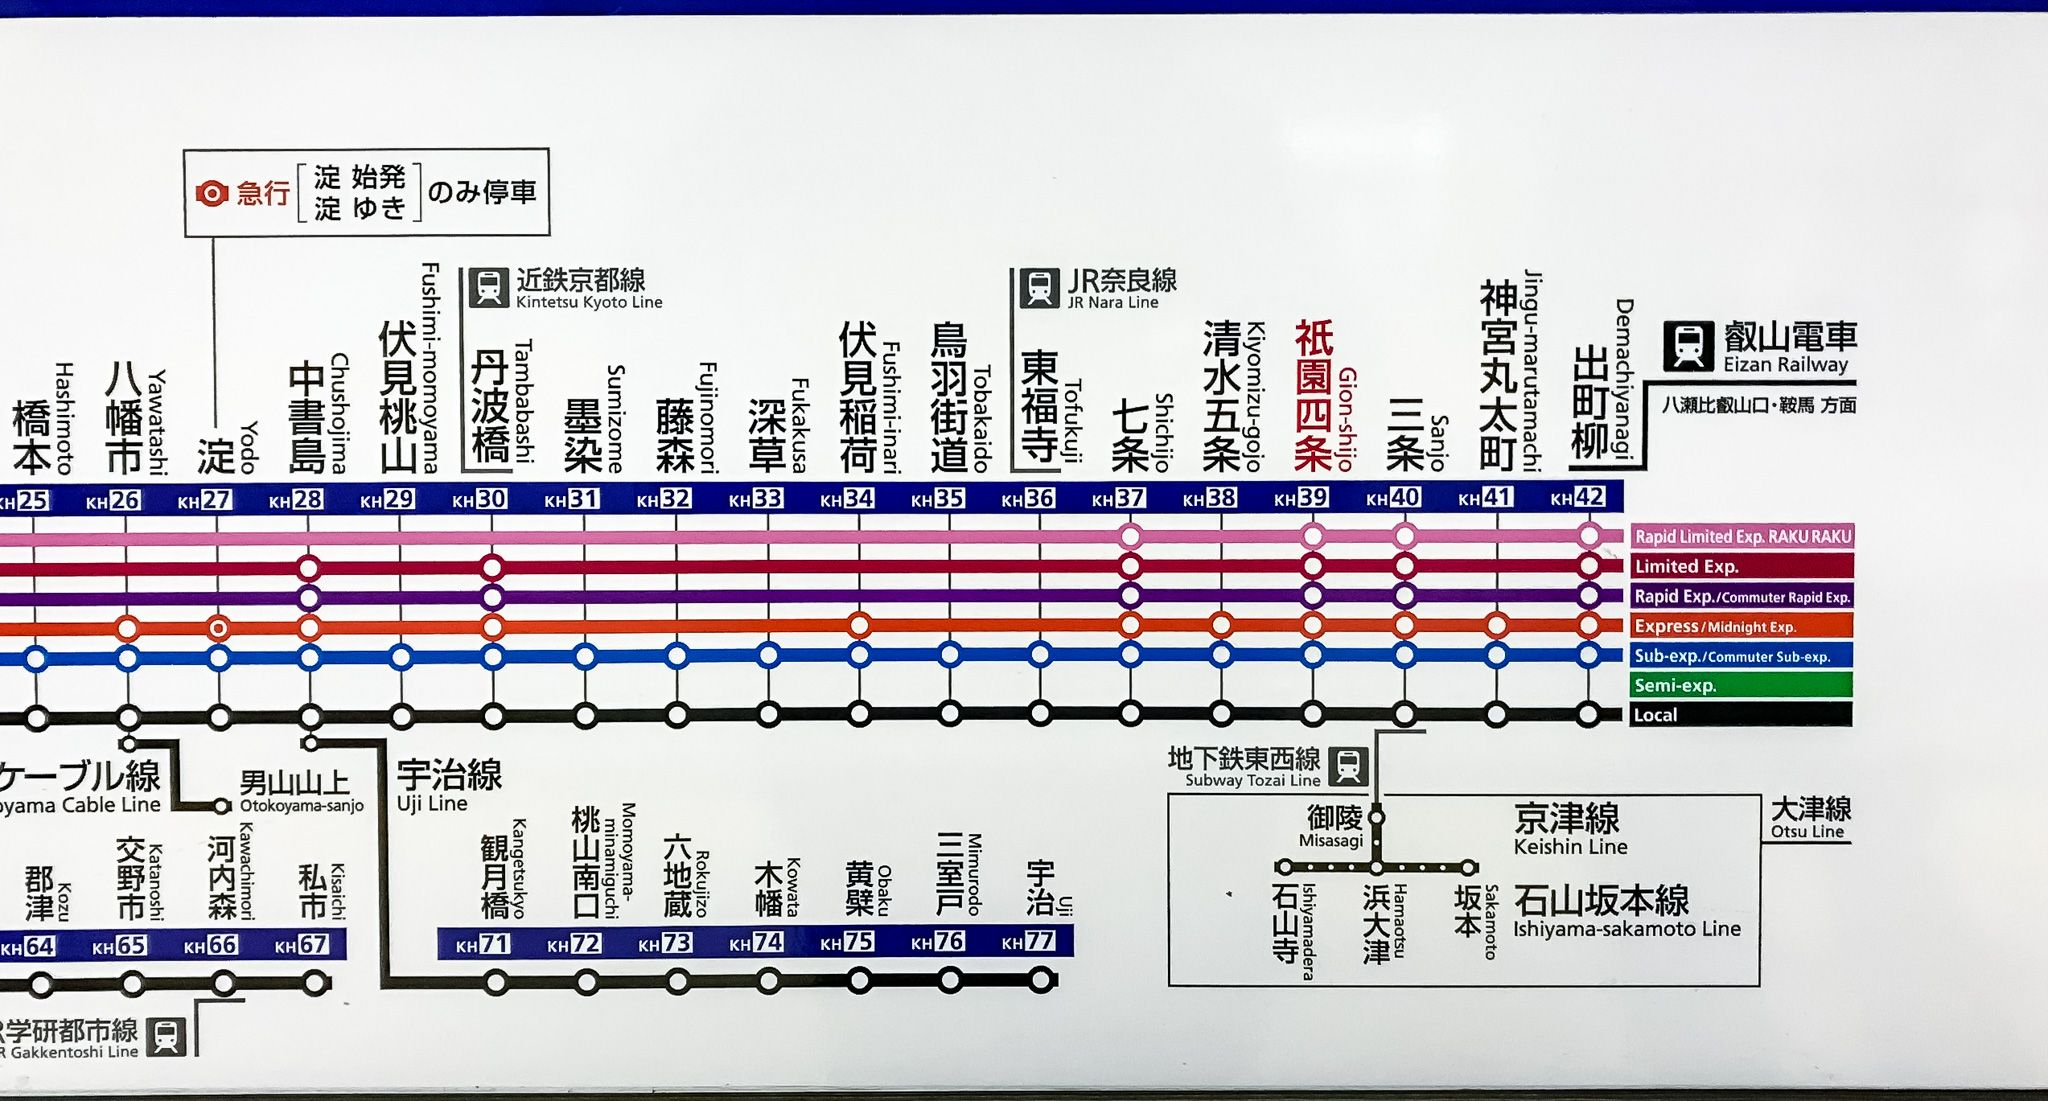 Local and Express rail chart for trains along the same line